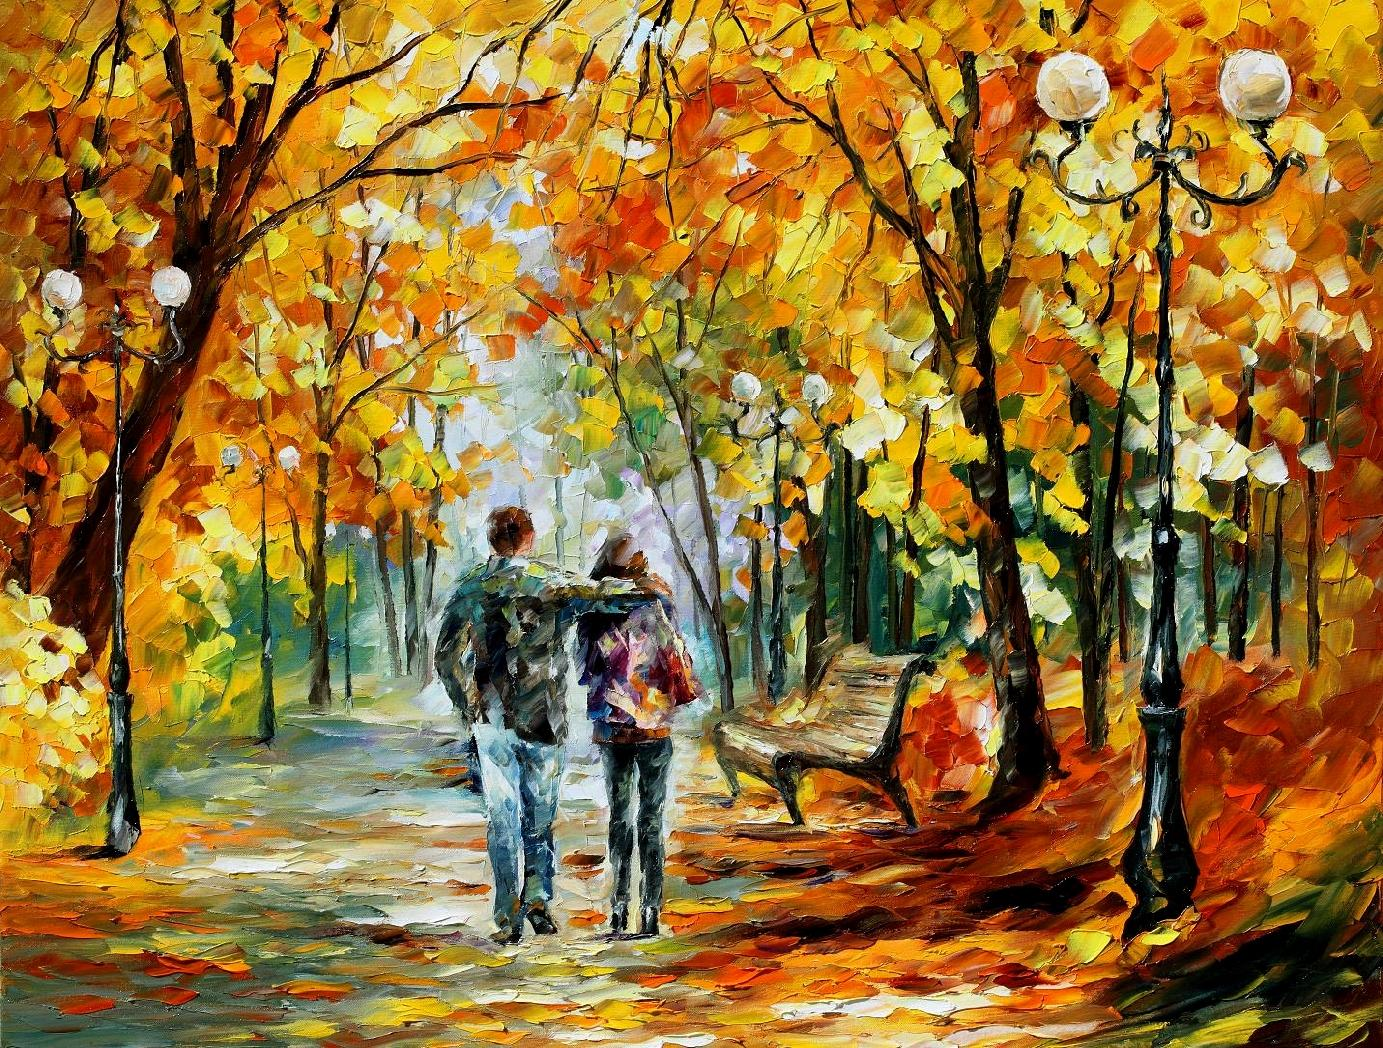 Leonid Afremov wallpaper 144438 1383x1048